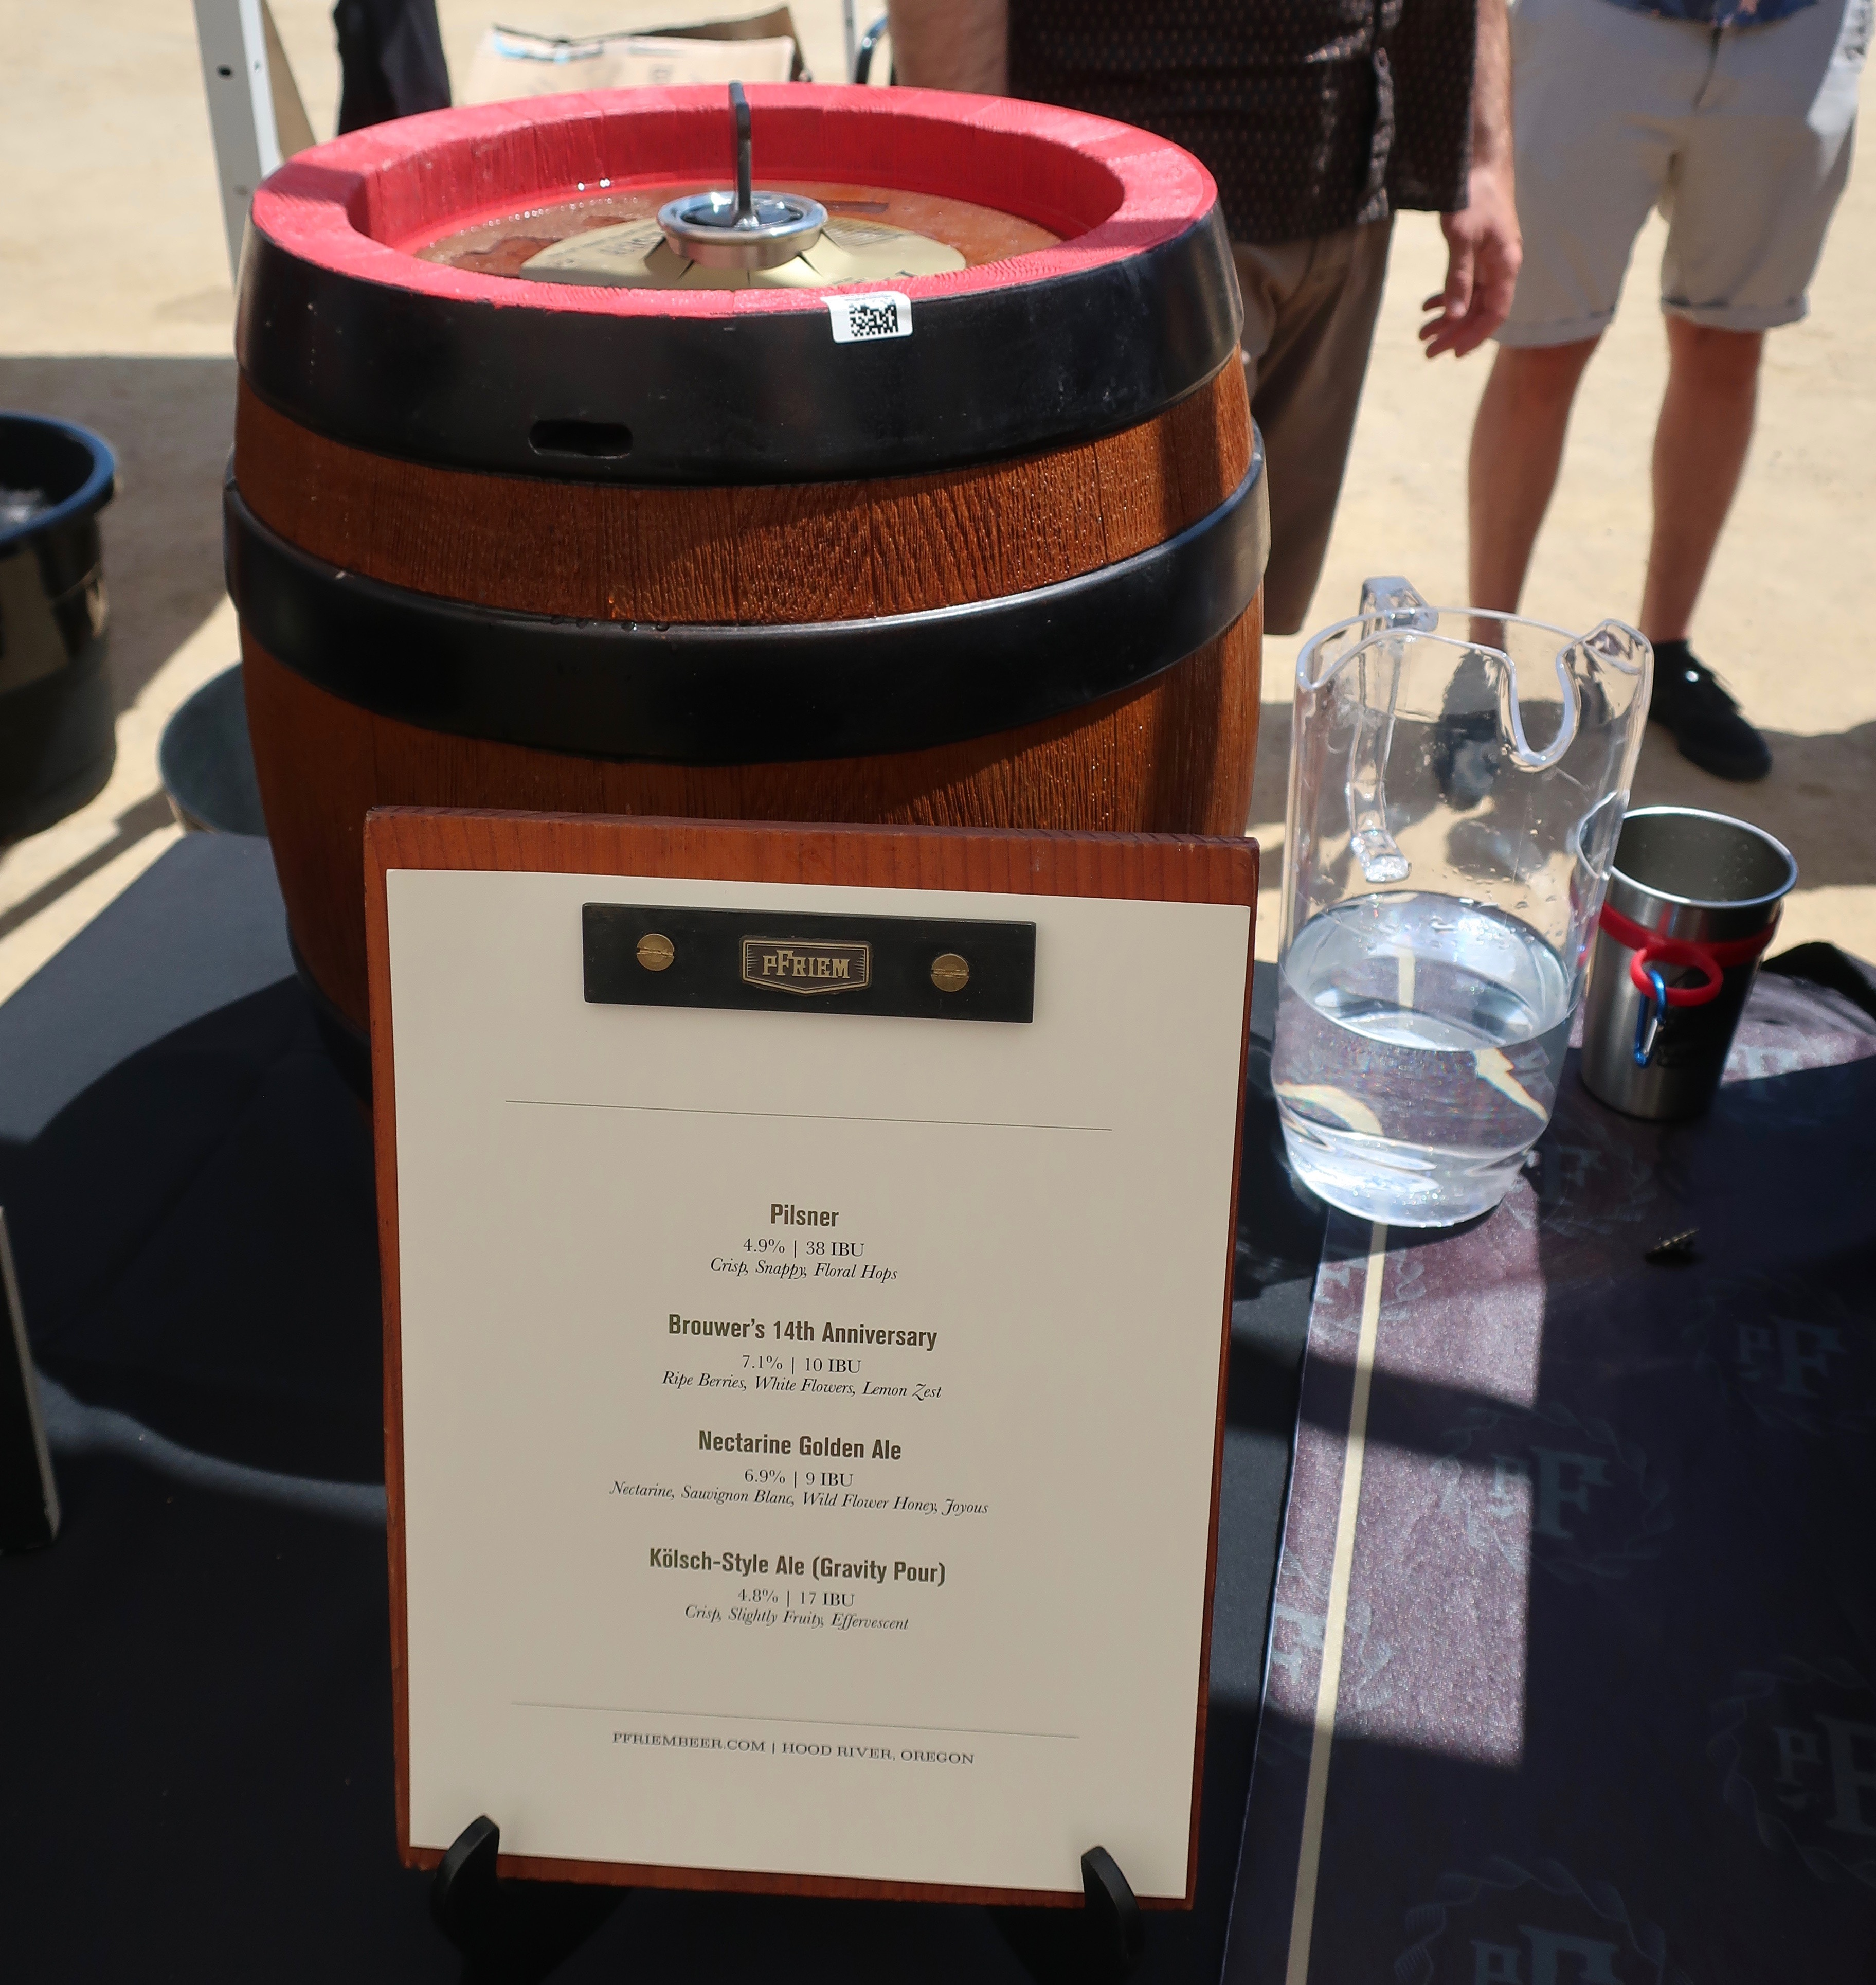 pFriem Family Brewers debuted its gravity fed keg that poured its Kölsch-Style Ale at the 2019 Firestone Walker Invitational Beer Fest.